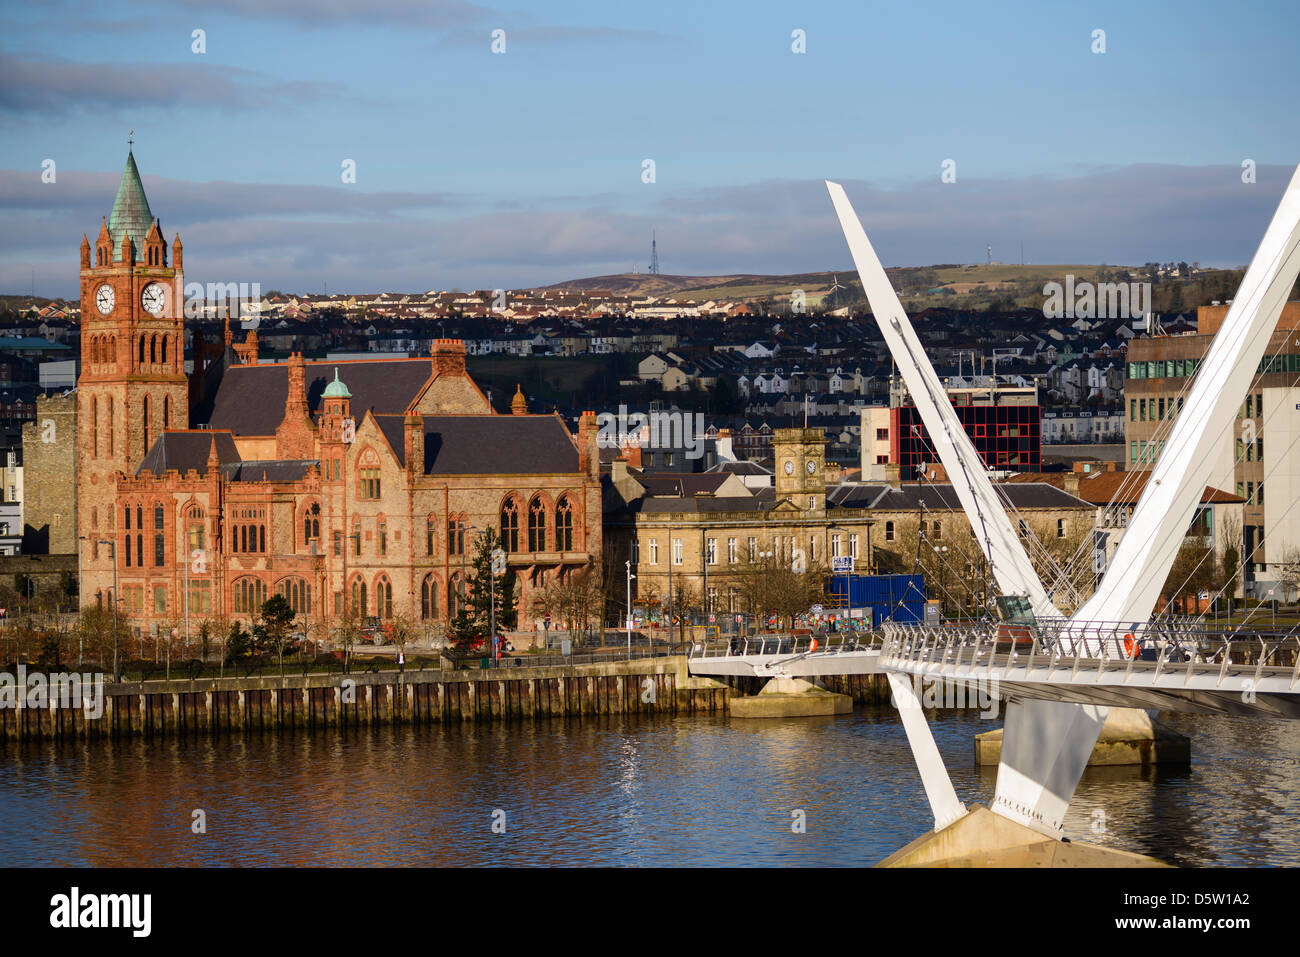 Derry City, Northern Ireland - Stock Image